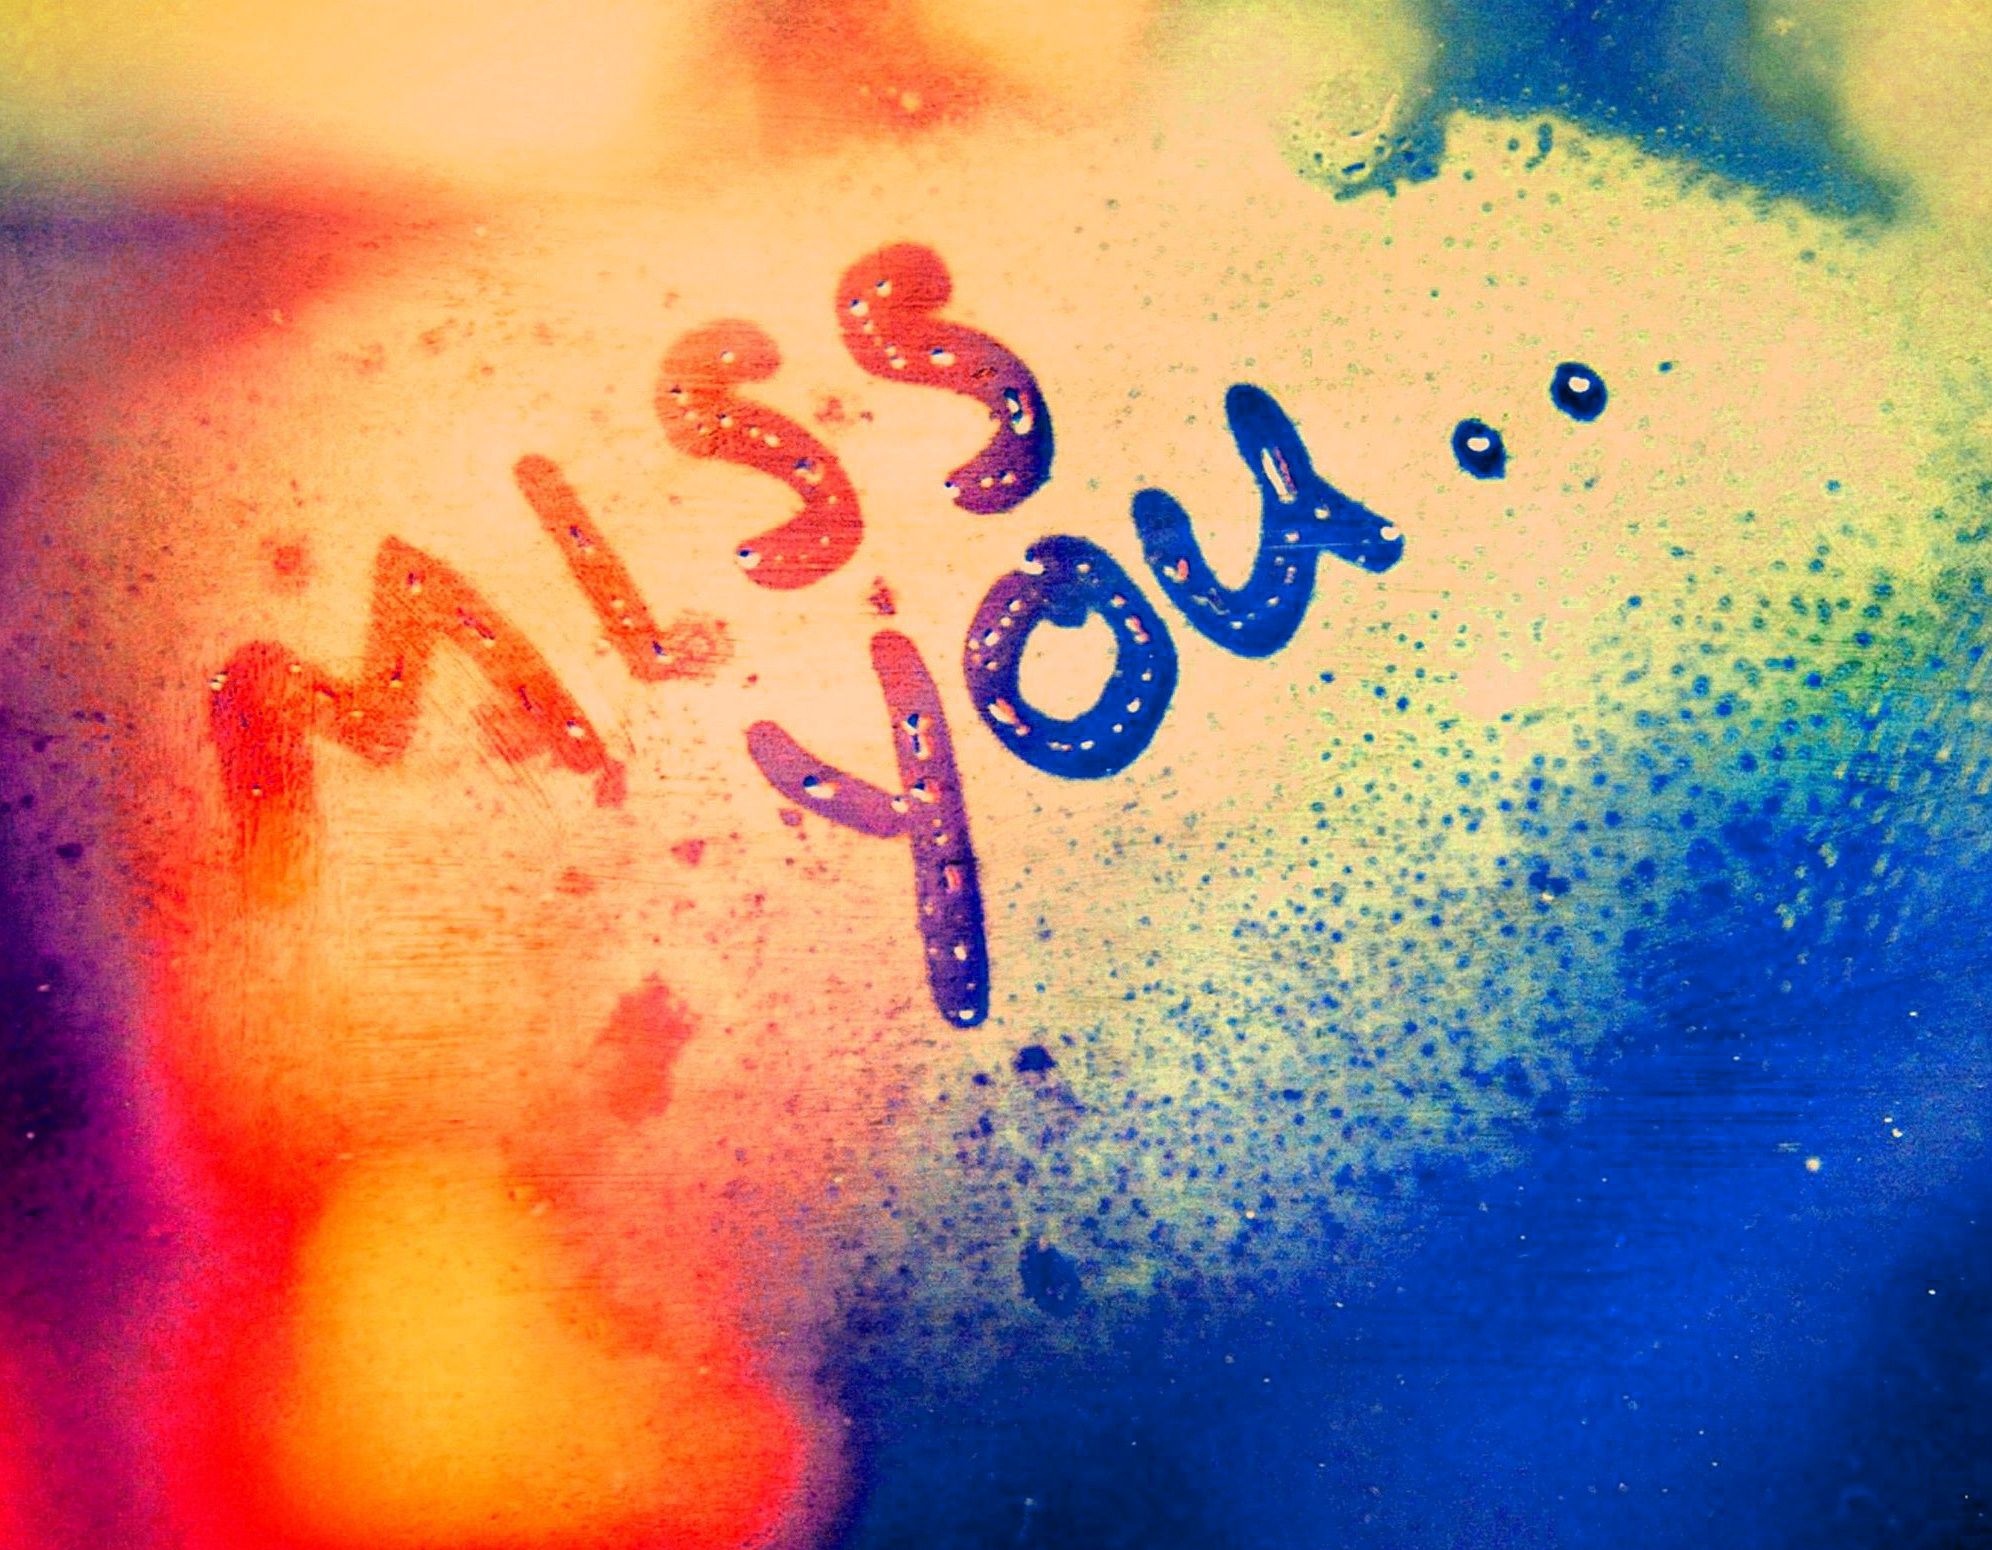 I Miss You Wallpaper Download